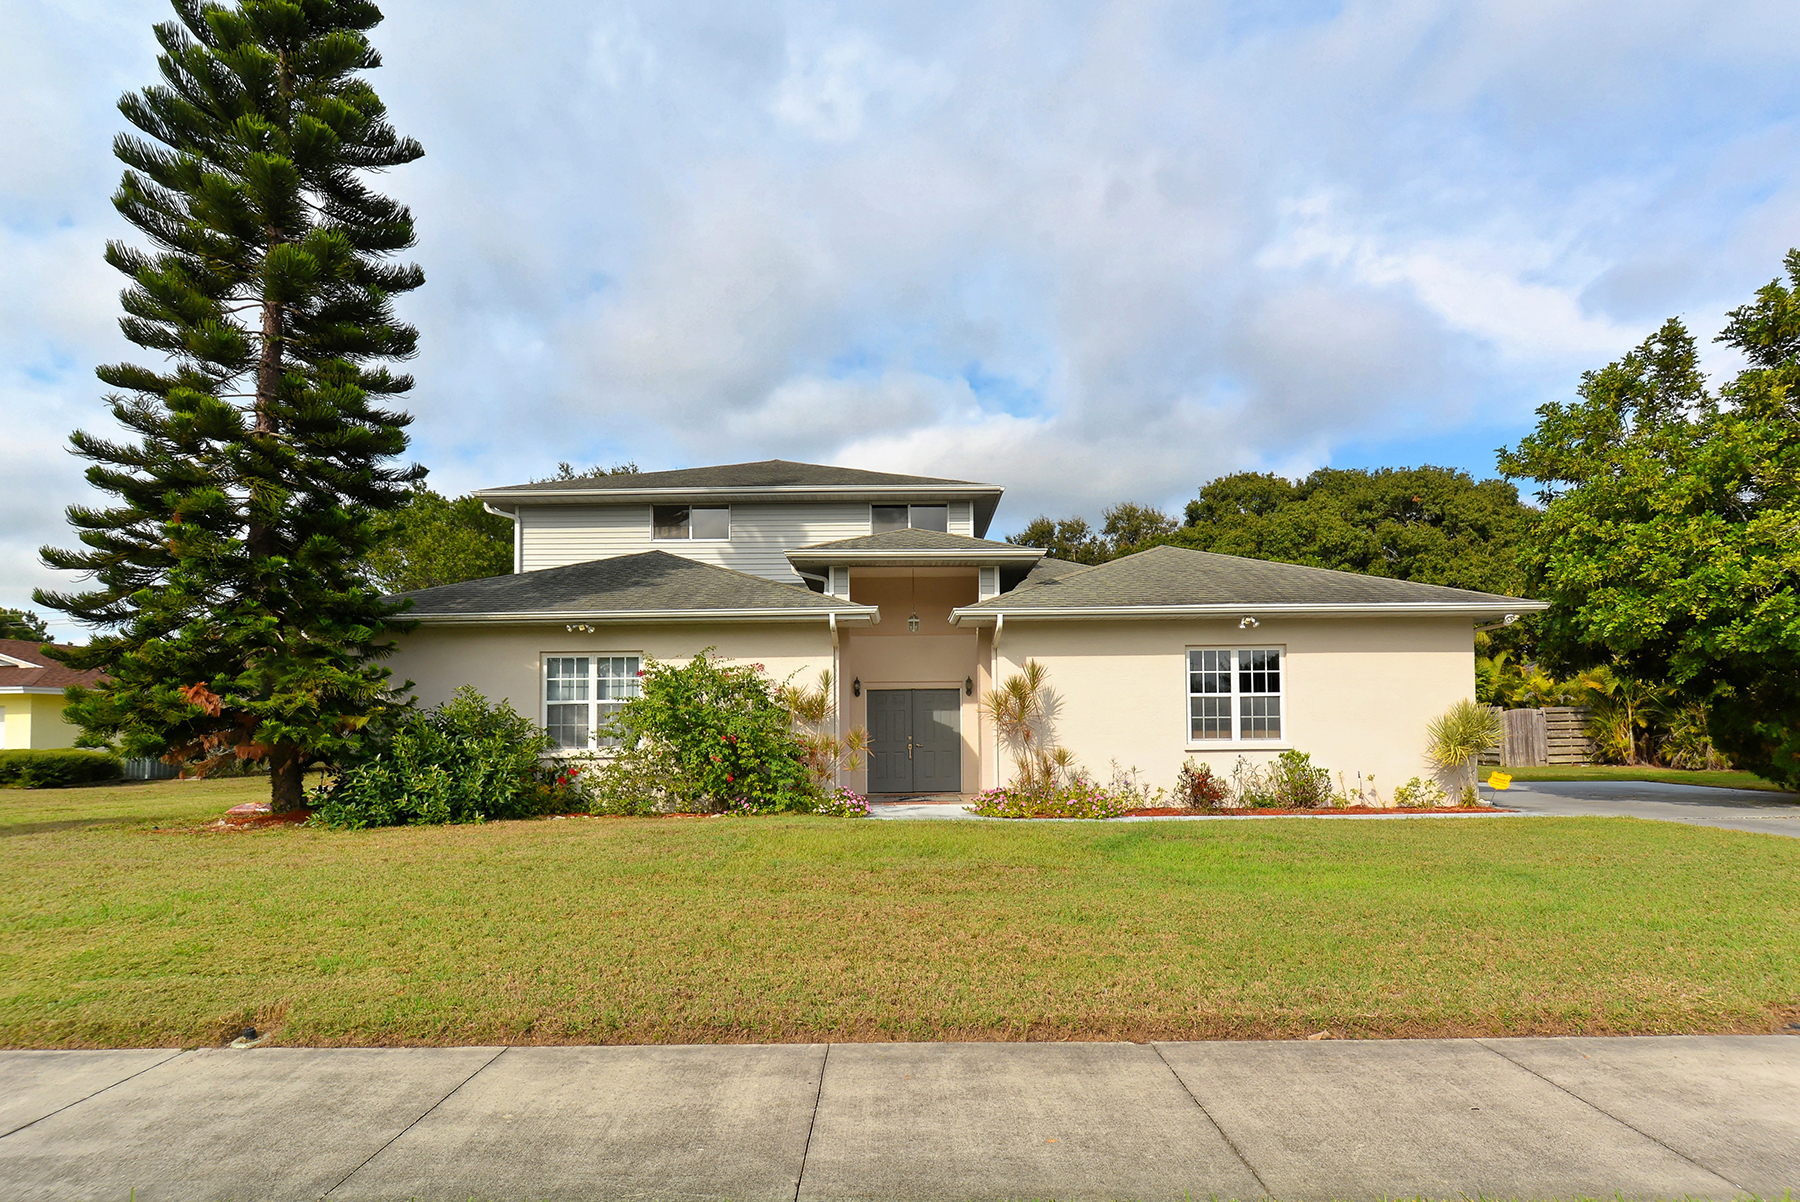 Single Family Home for Sale at WHITFIELD ESTATES 437 Whitfield Ave Sarasota, Florida, 34243 United States